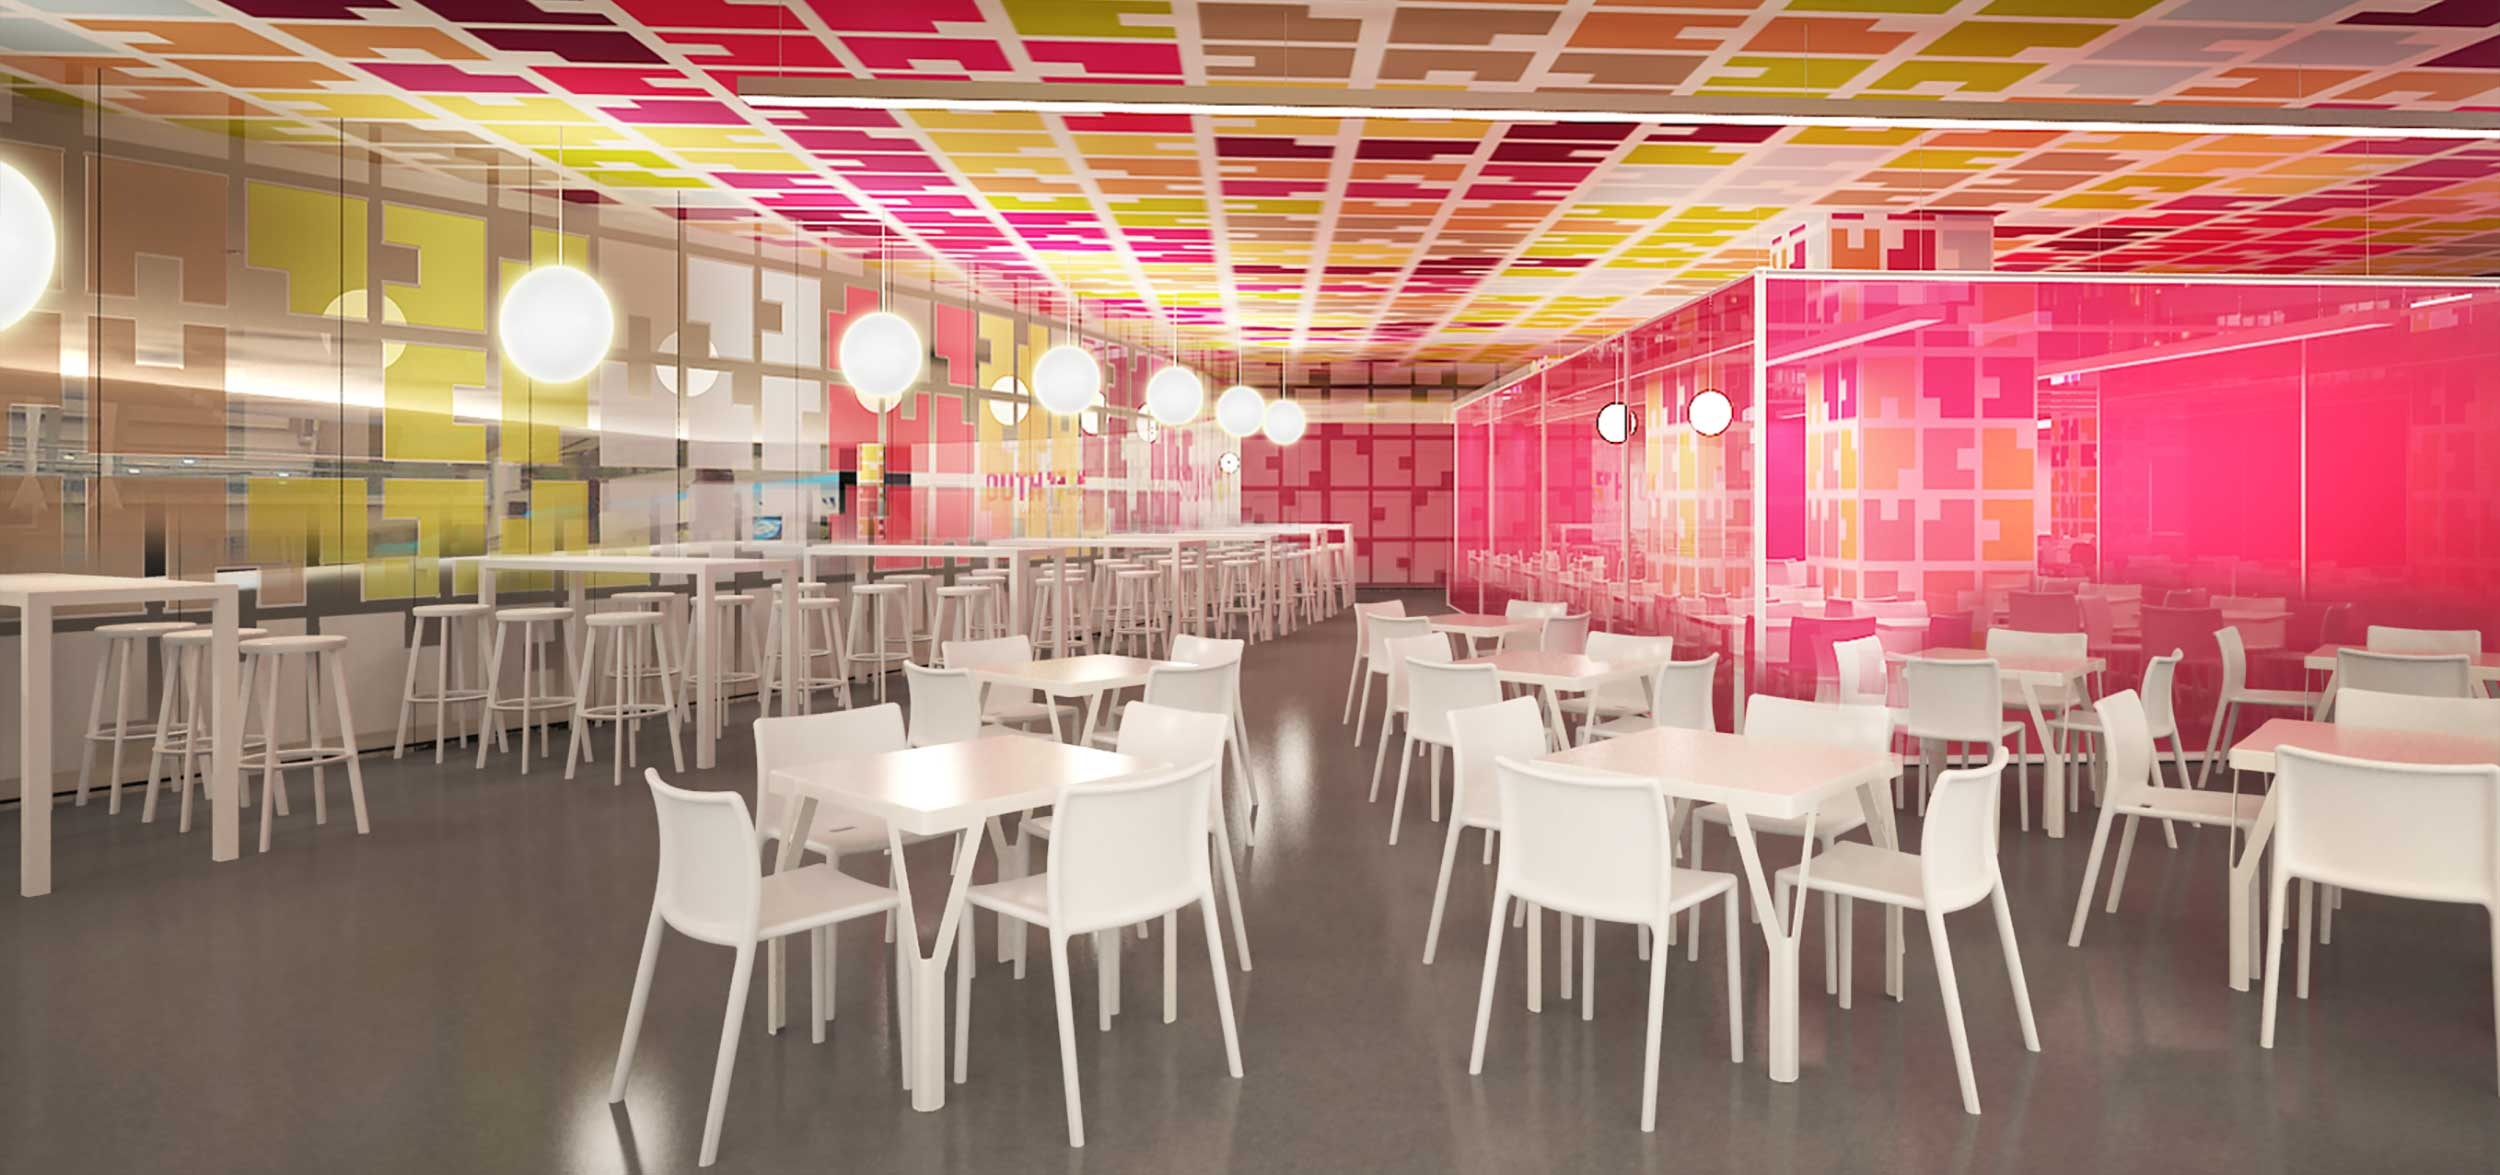 Via South - take it easy diner' - the first branded food court in the city of Chennai.